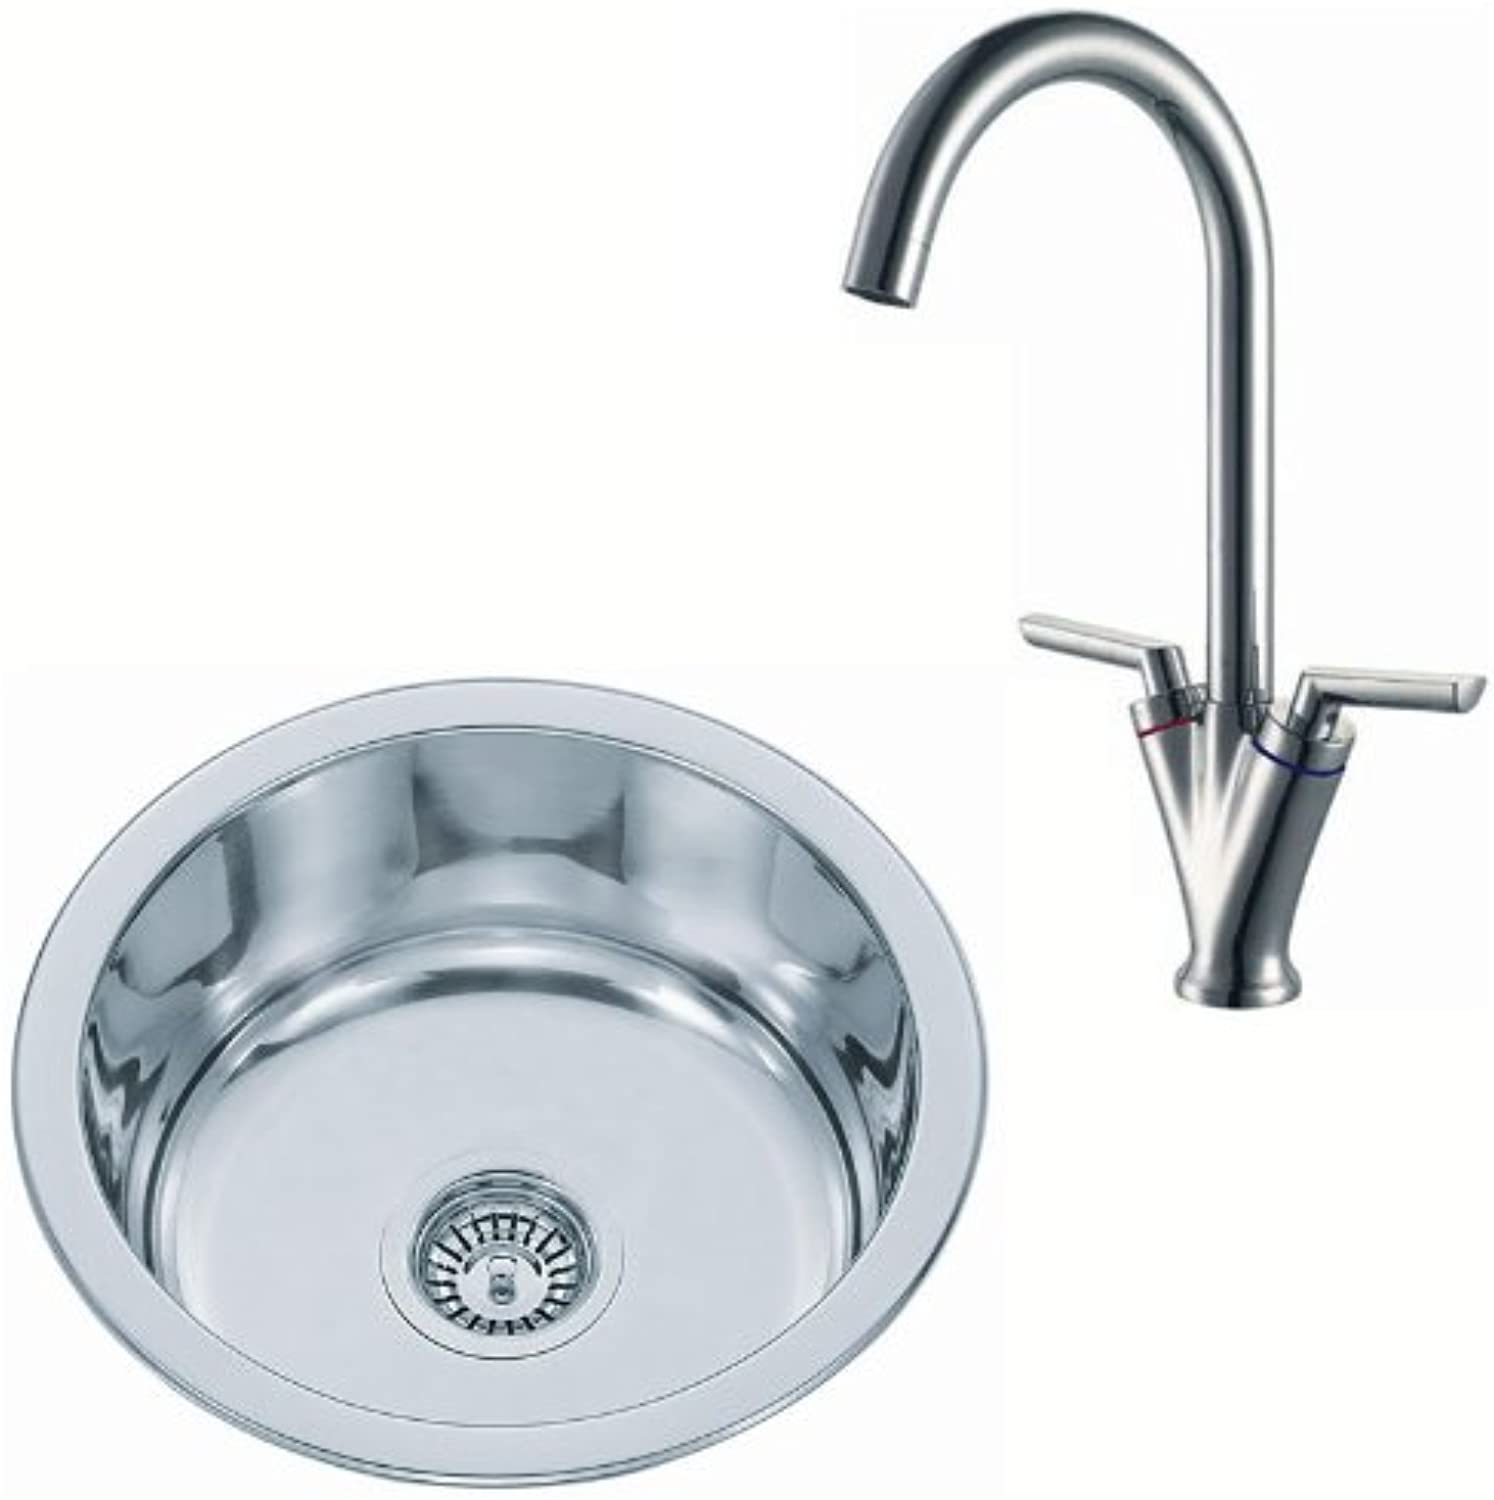 Grand Taps Small Stainless Steel Kitchen Sink Bowl And Chrome Mixer Tap Set (pack KST101 mr)